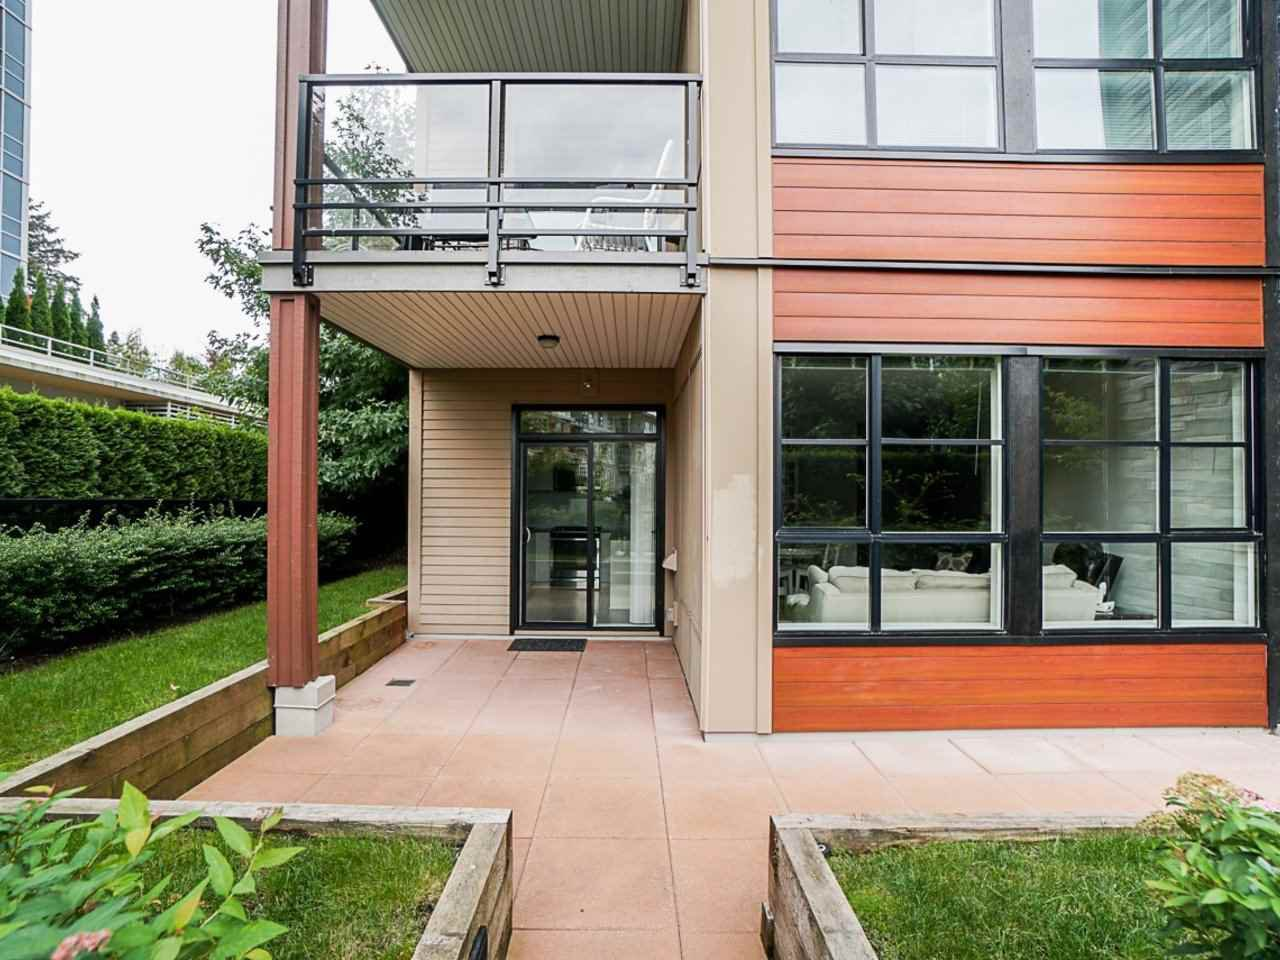 Photo 32: Photos: 108 1151 WINDSOR Mews in Coquitlam: New Horizons Condo for sale : MLS®# R2500299